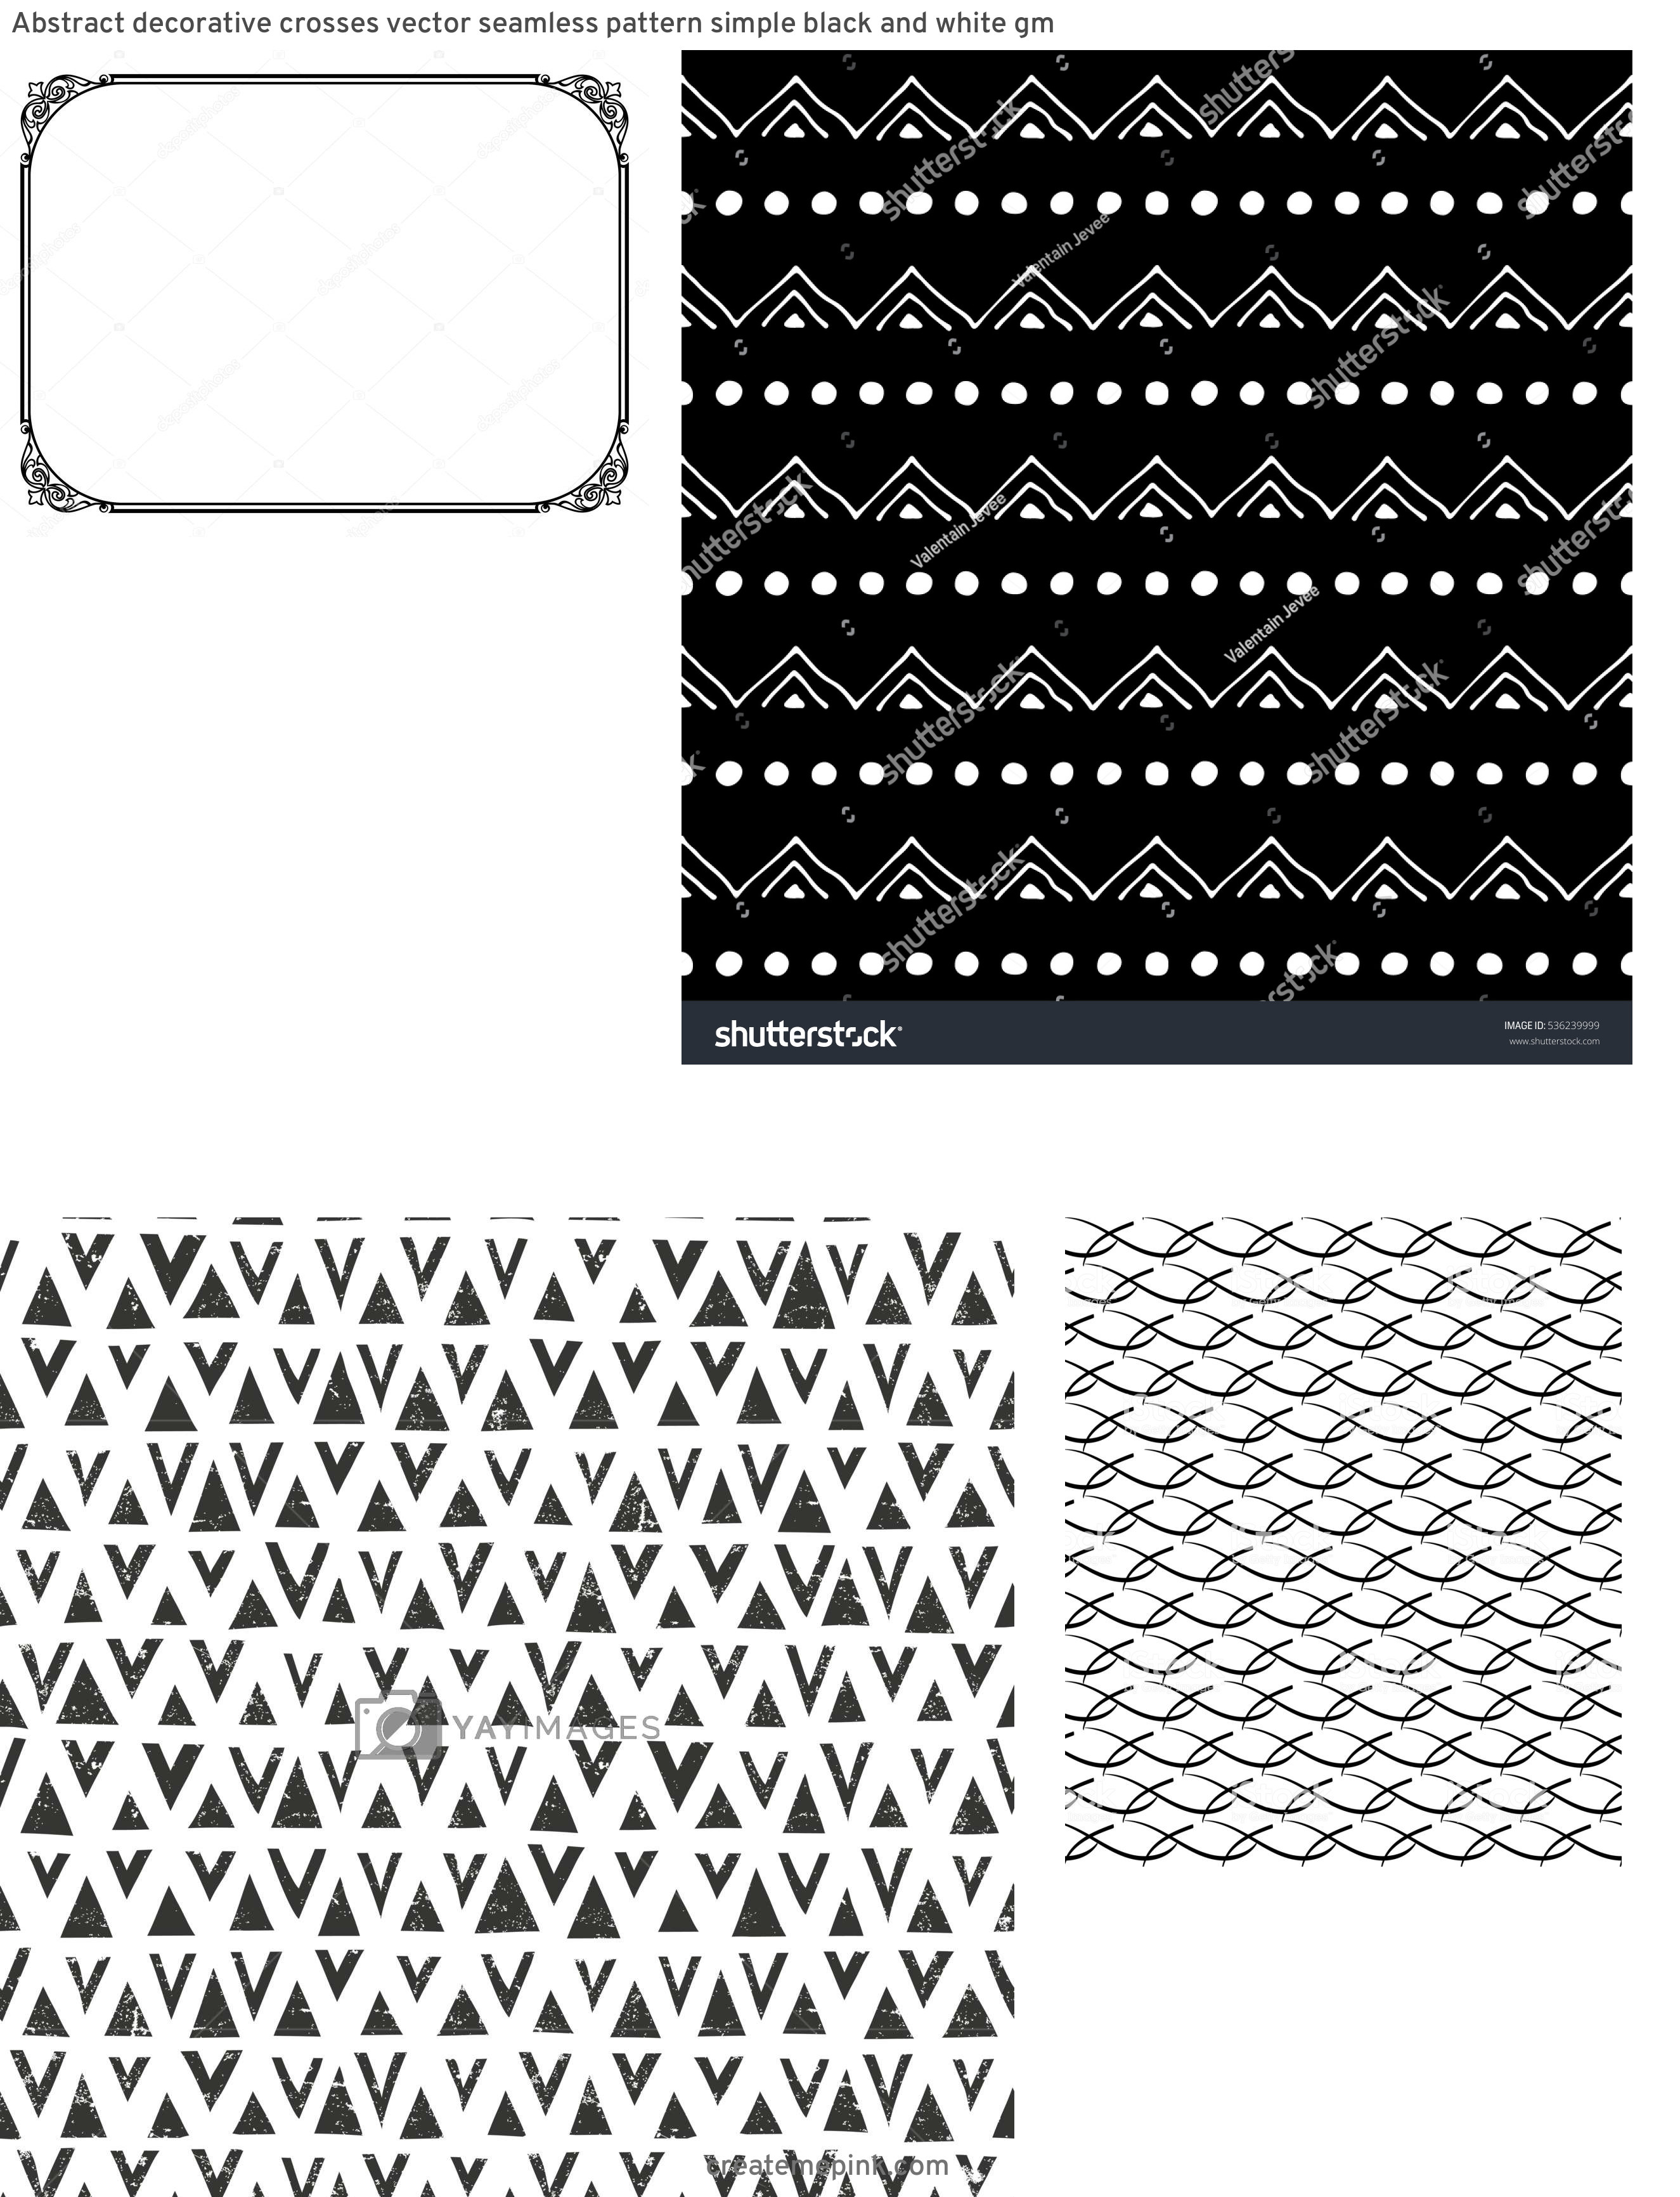 Simple Black Decorative Vector Patterns: Abstract Decorative Crosses Vector Seamless Pattern Simple Black And White Gm